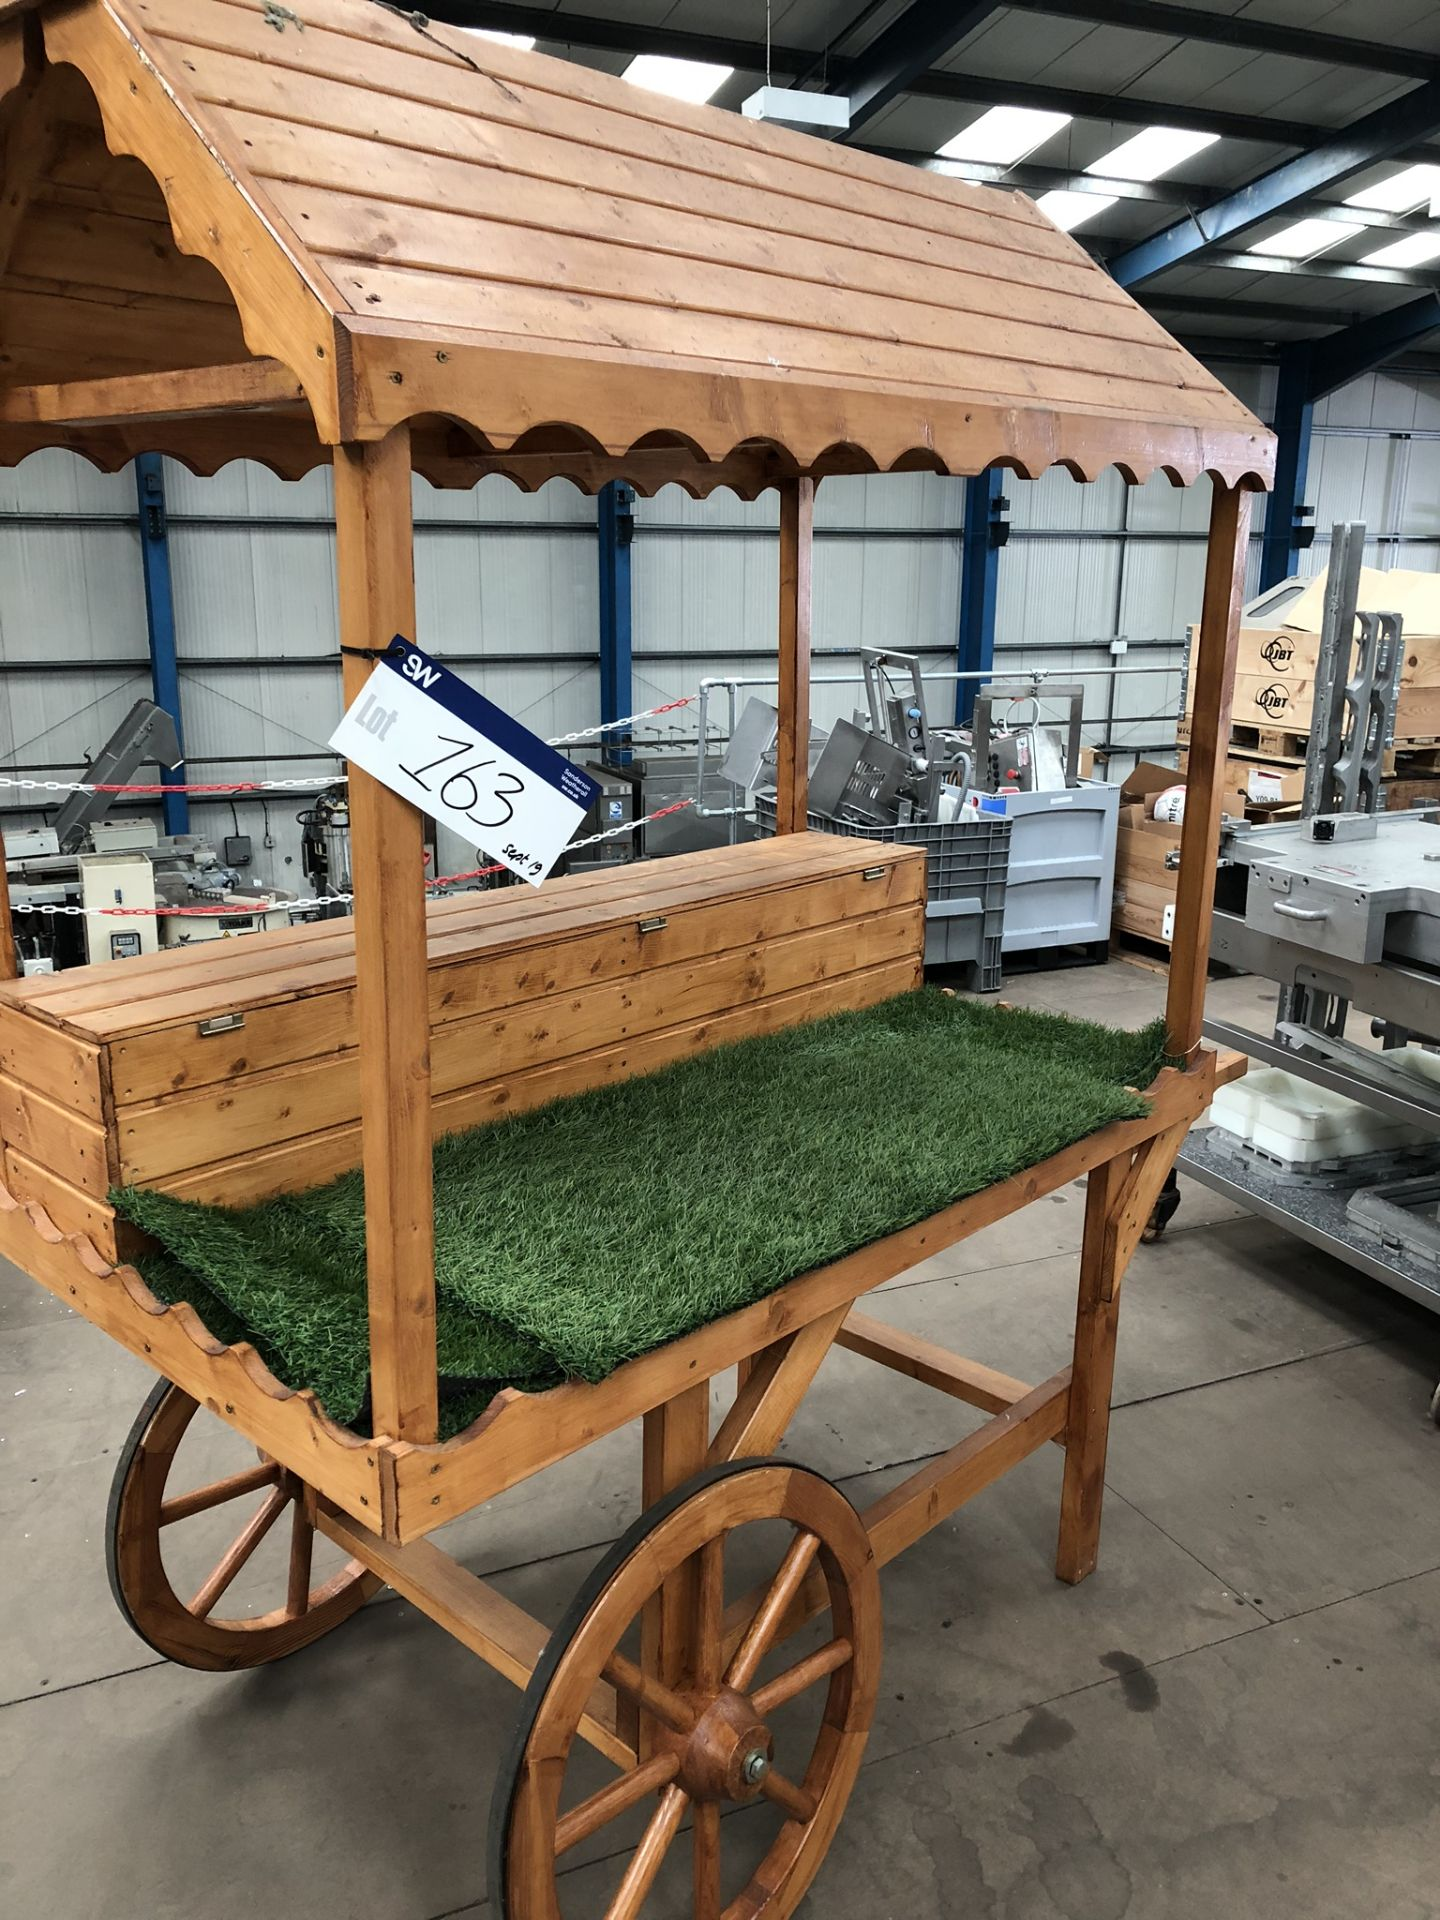 Lotto 163 - Market Stall, approx. 1.6m x 0.9m x 2.1m high, lift out charge - £20